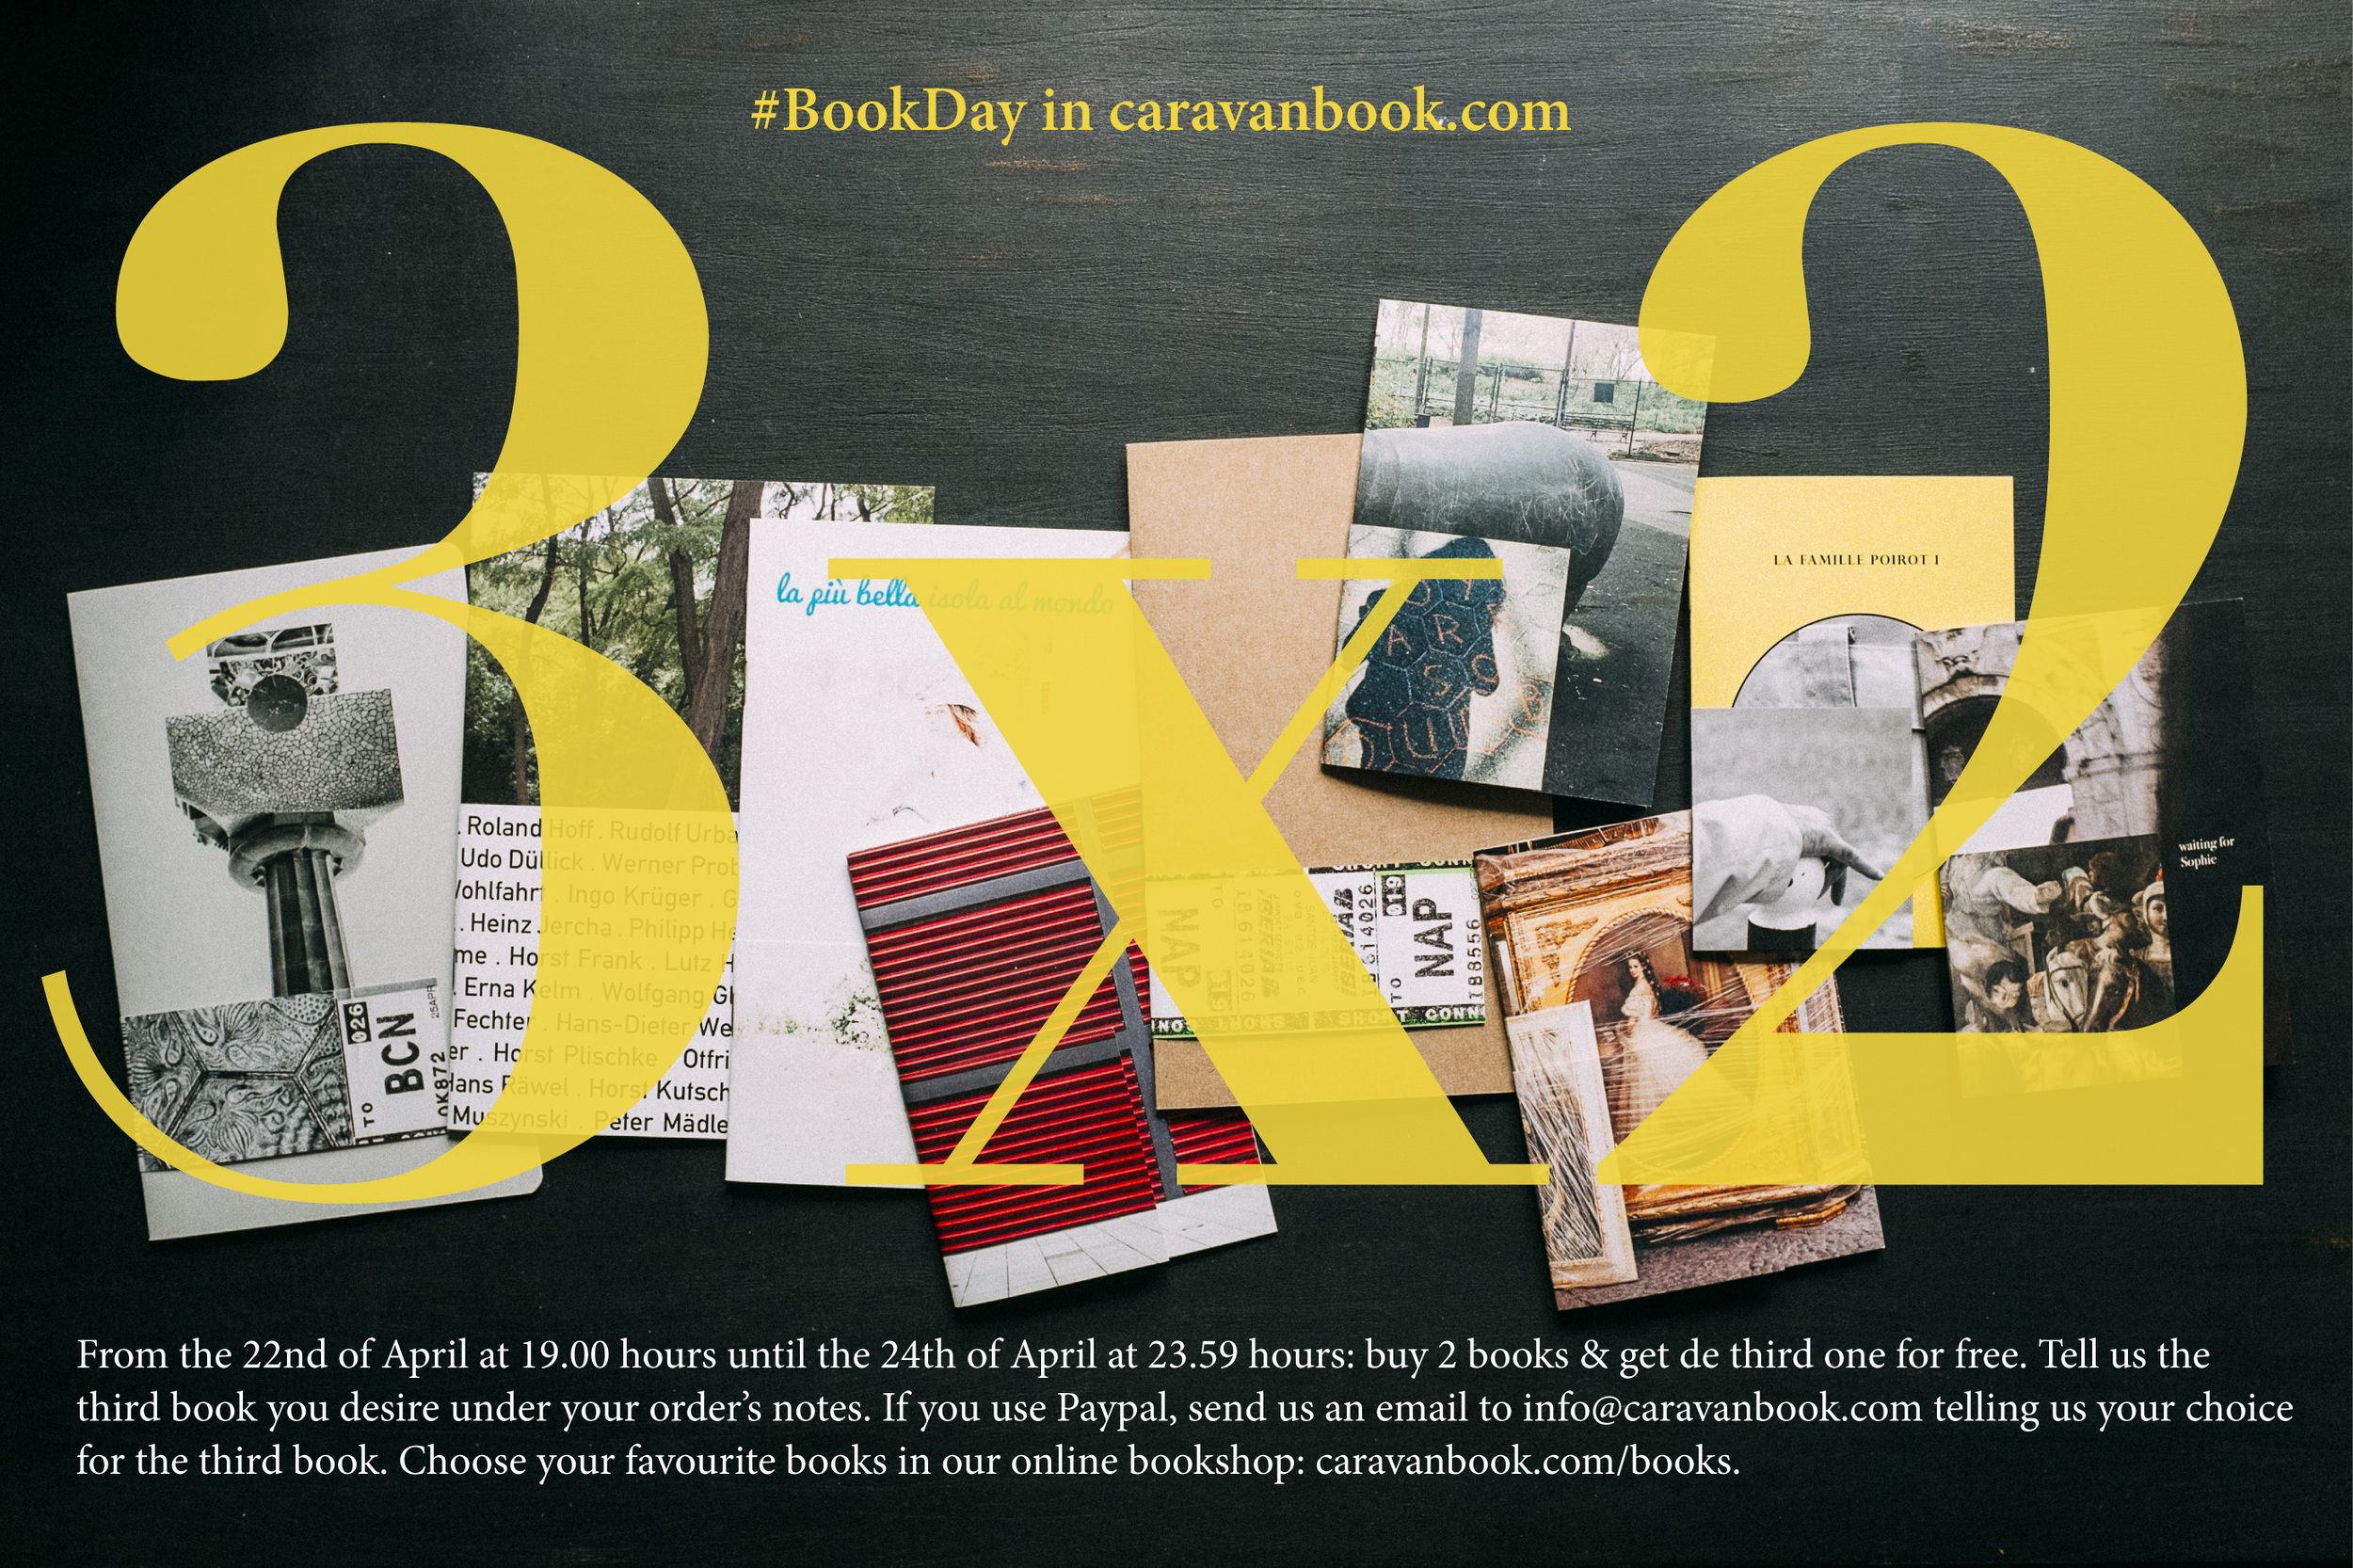 Caravanbook celebrates the #BookDay with a 3x2 offer under their online bookshop.